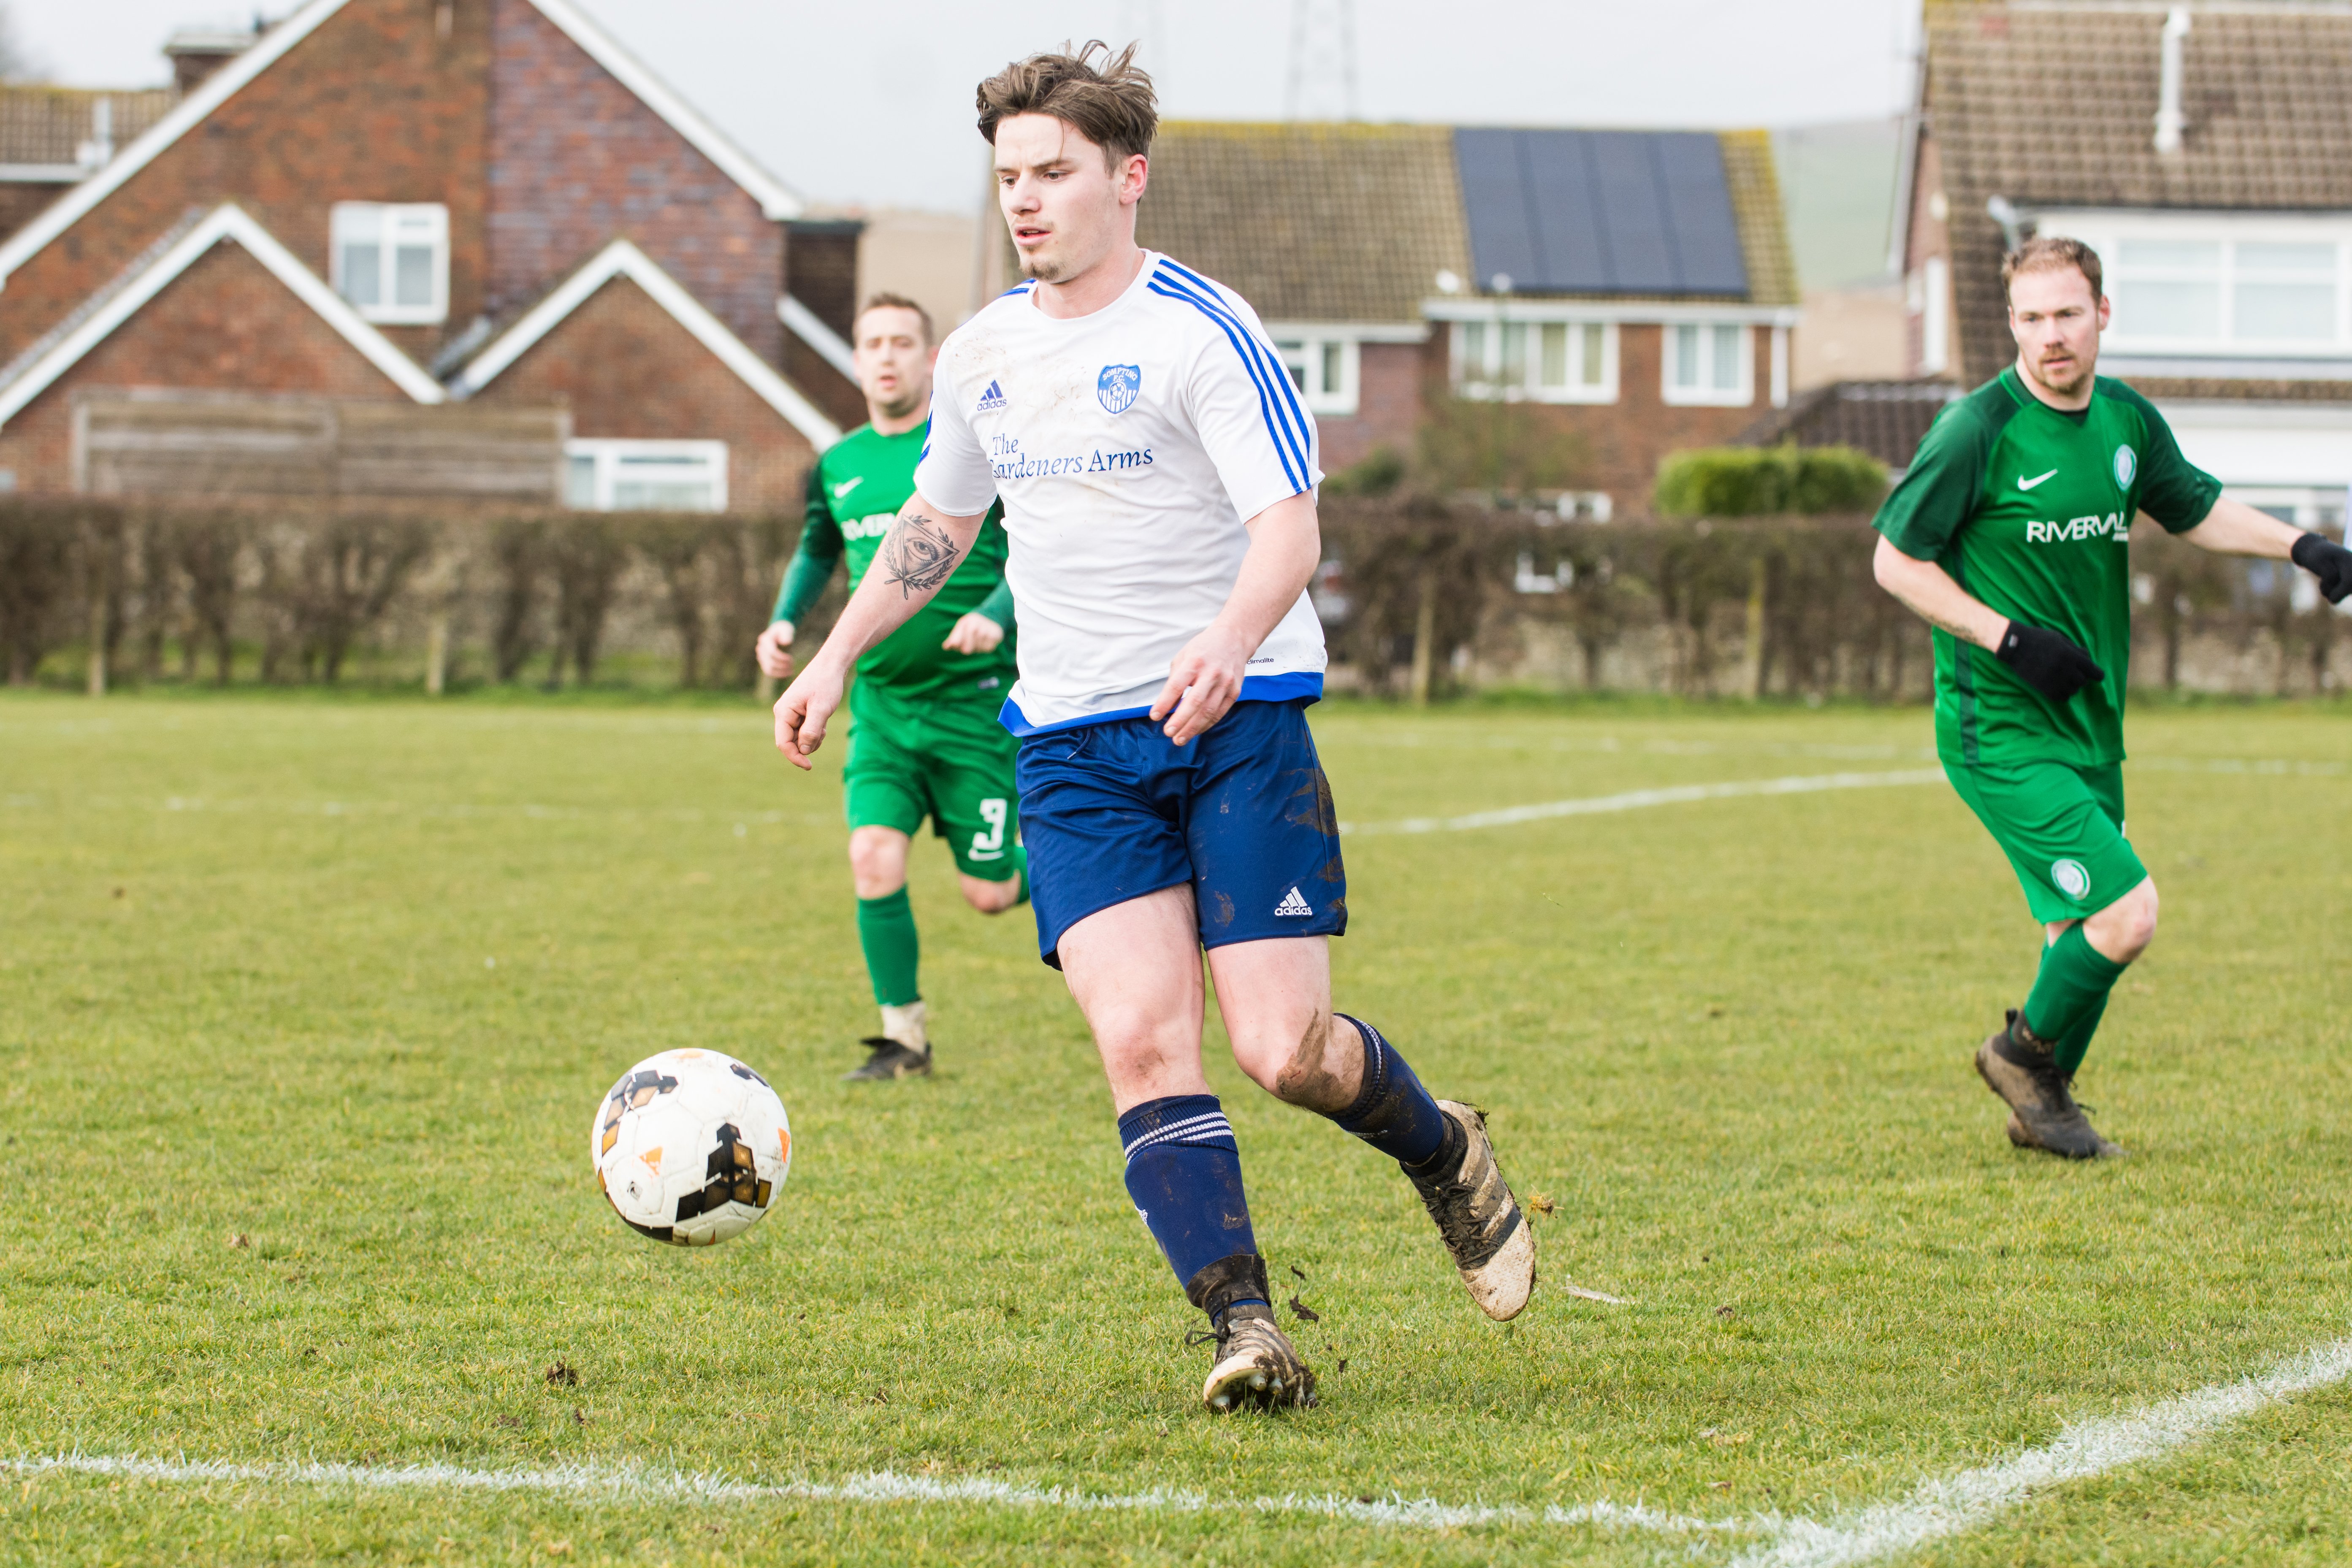 DAVID_JEFFERY FC Sporting vs Sompting 2nds 10.03.18 58